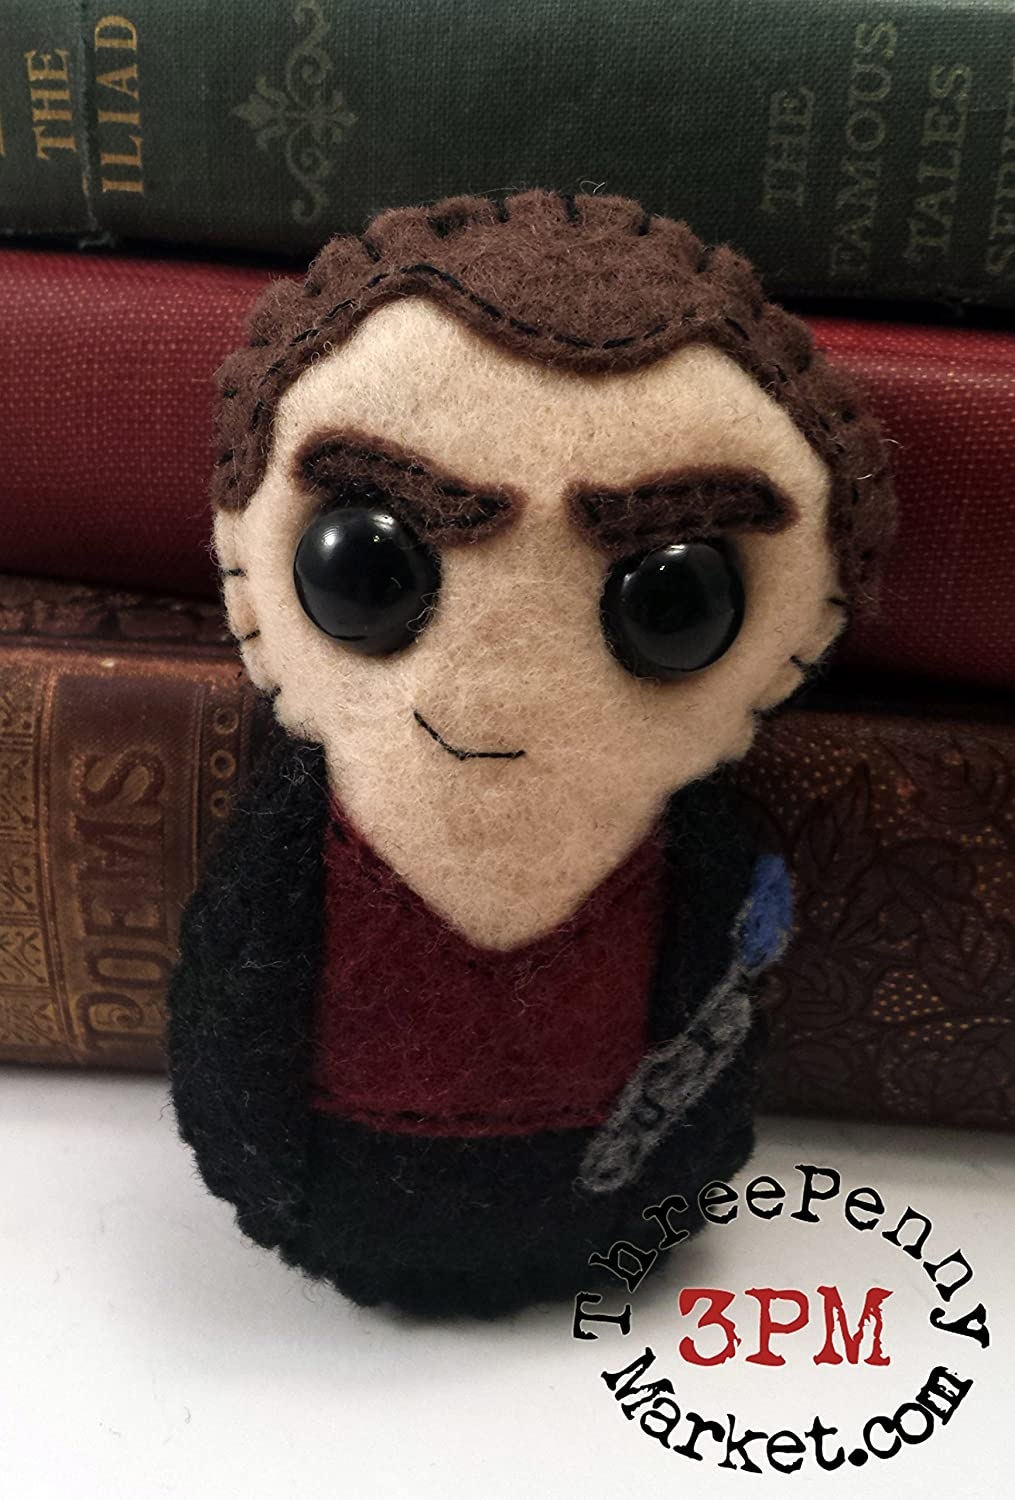 Christopher Eccleston 9th Doctor Dr Who plushie made to order